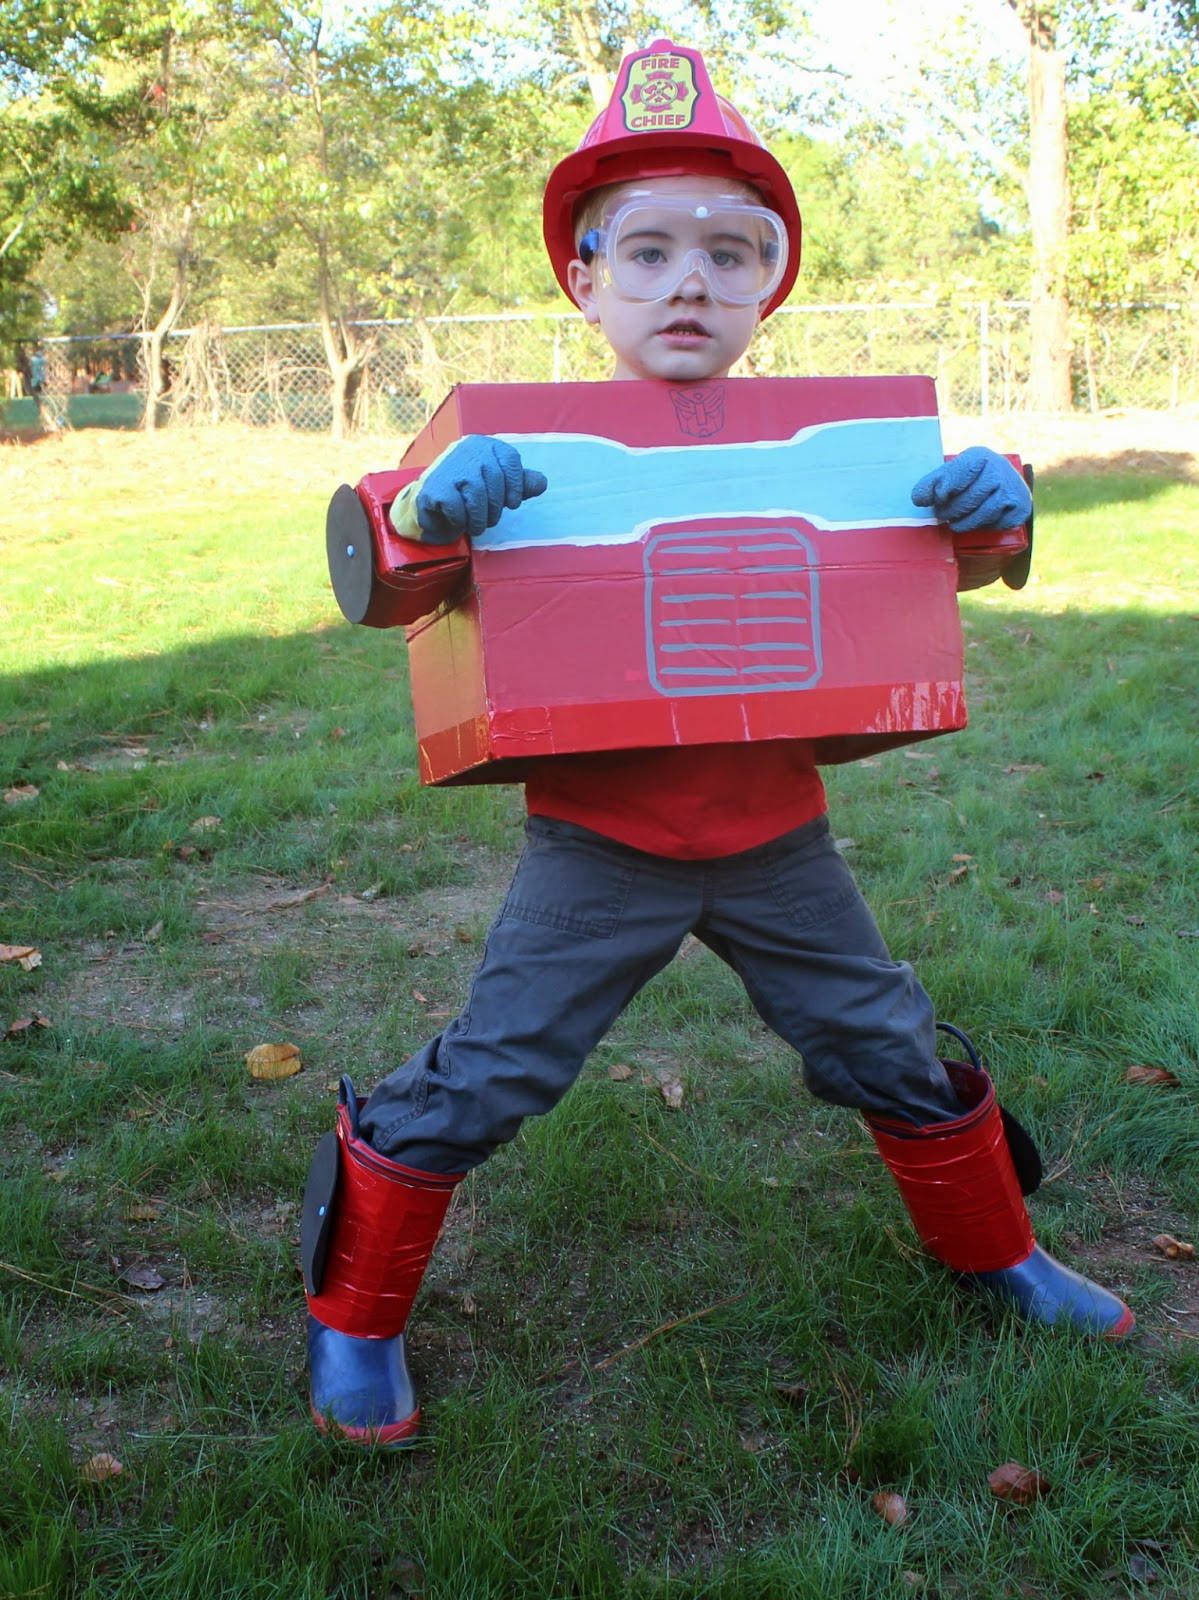 Best ideas about DIY Transformers Costumes . Save or Pin Love City costume love our diy halloween costumes Now.